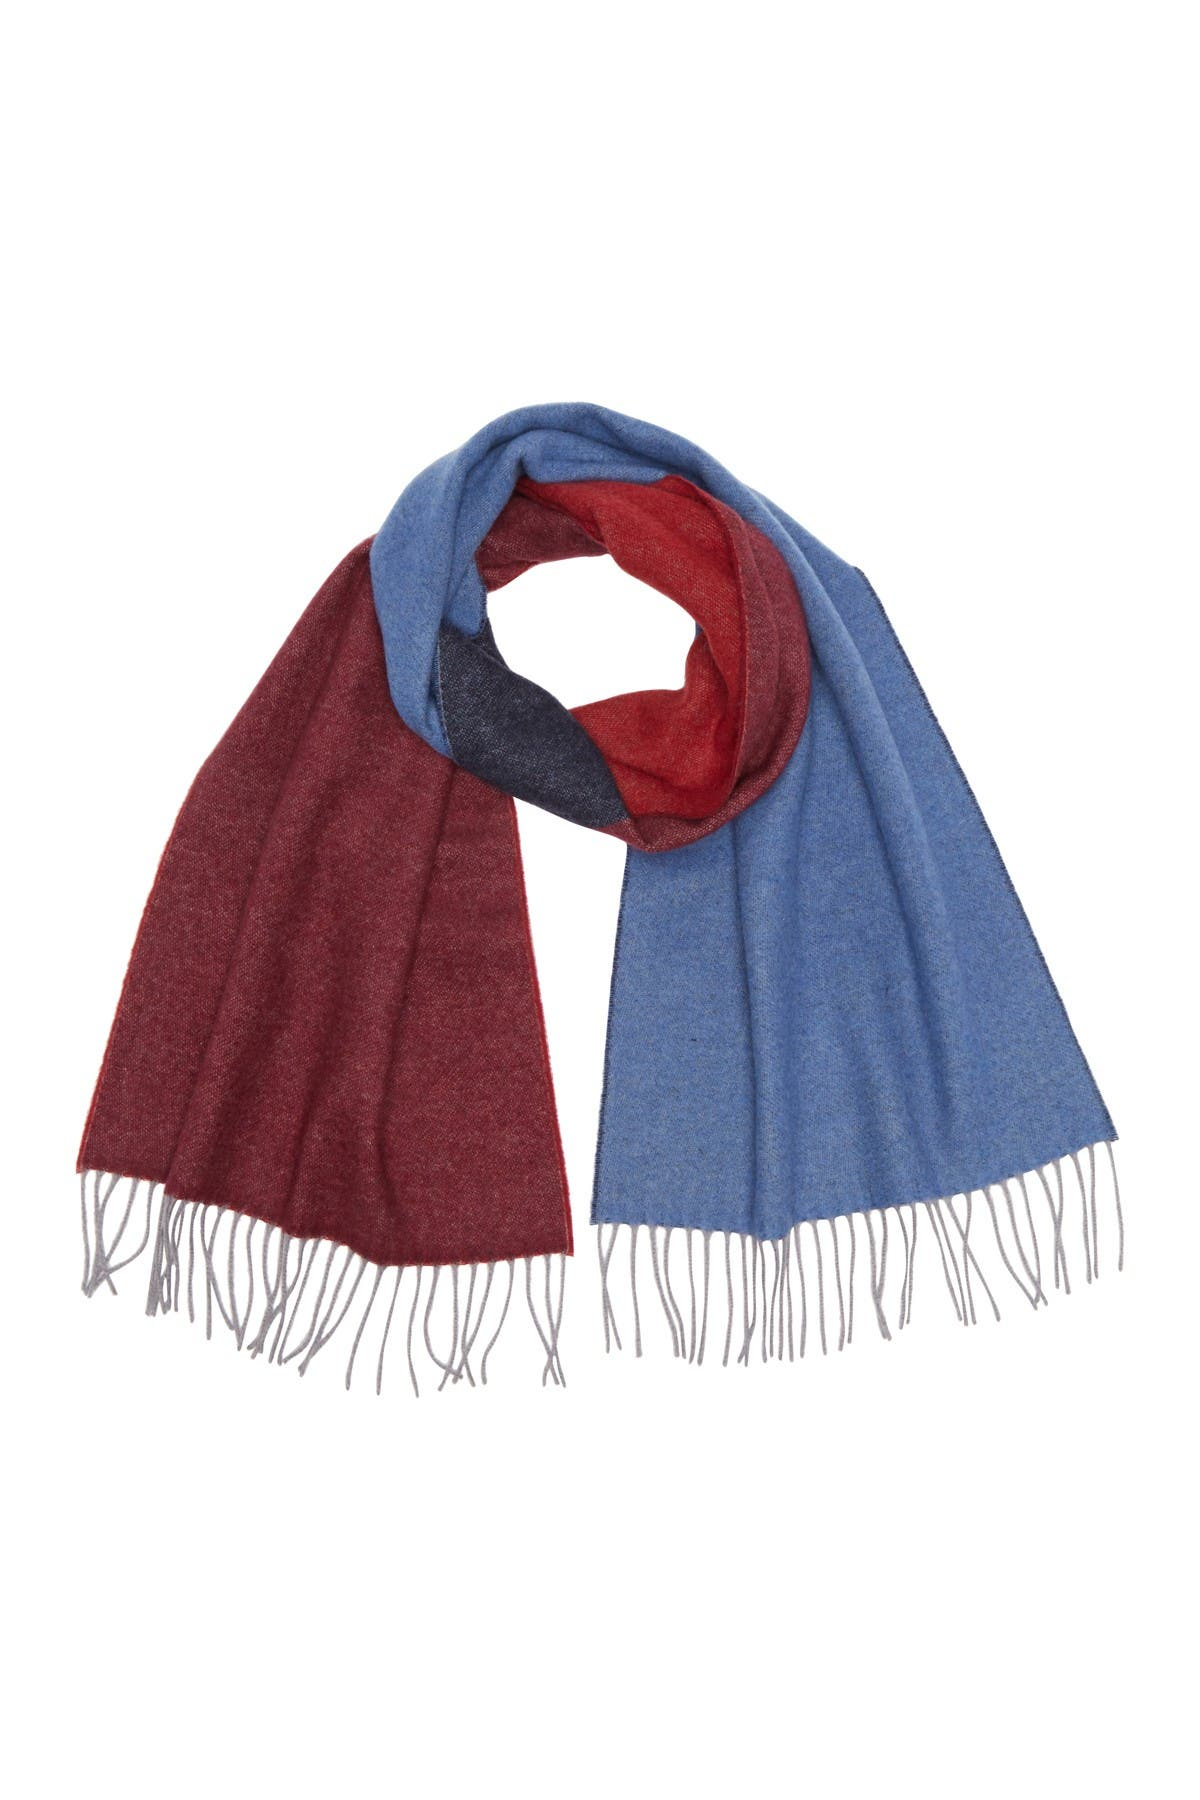 Image of Chelsey Imports Color Block Reversible Scarf